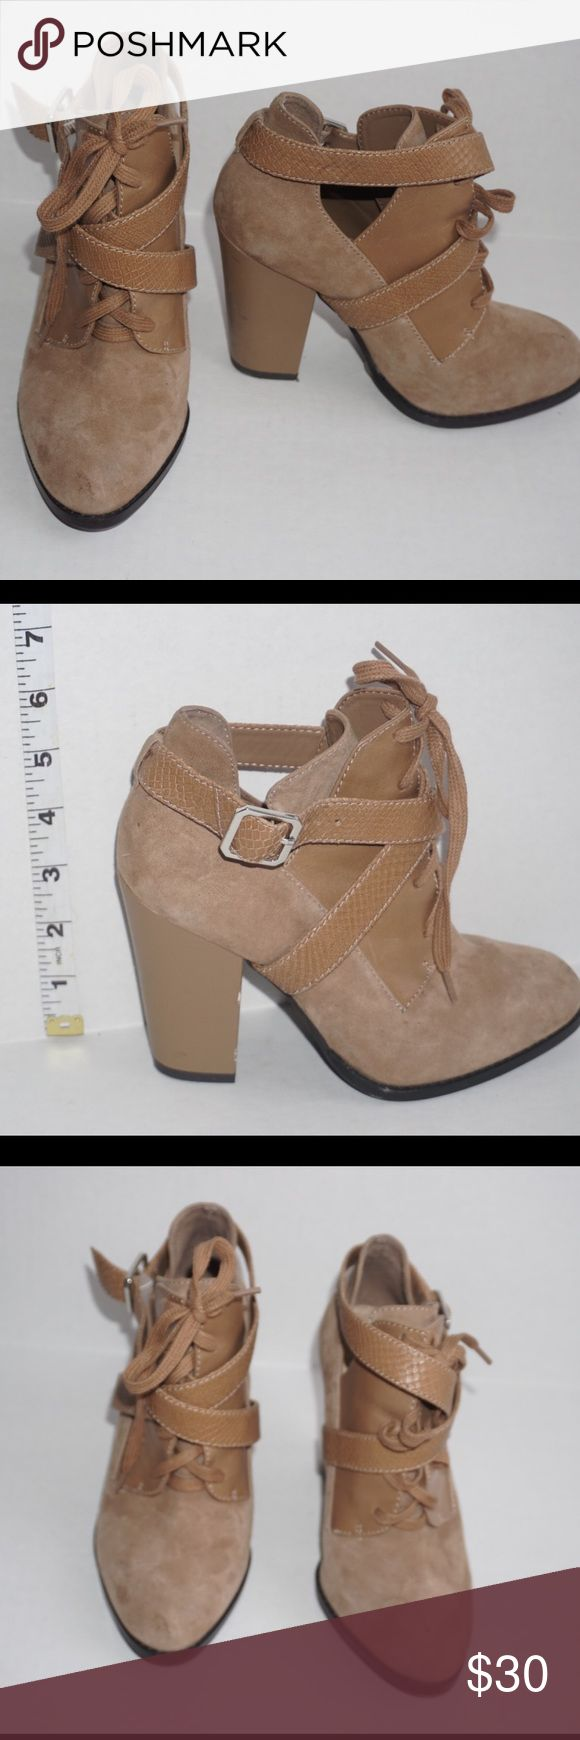 Gianni Bini brown booties Brown Gianni Bini Brown Suede Booties cross strapped lining and lace detail. In great condition. Gianni Bini Shoes Ankle Boots & Booties